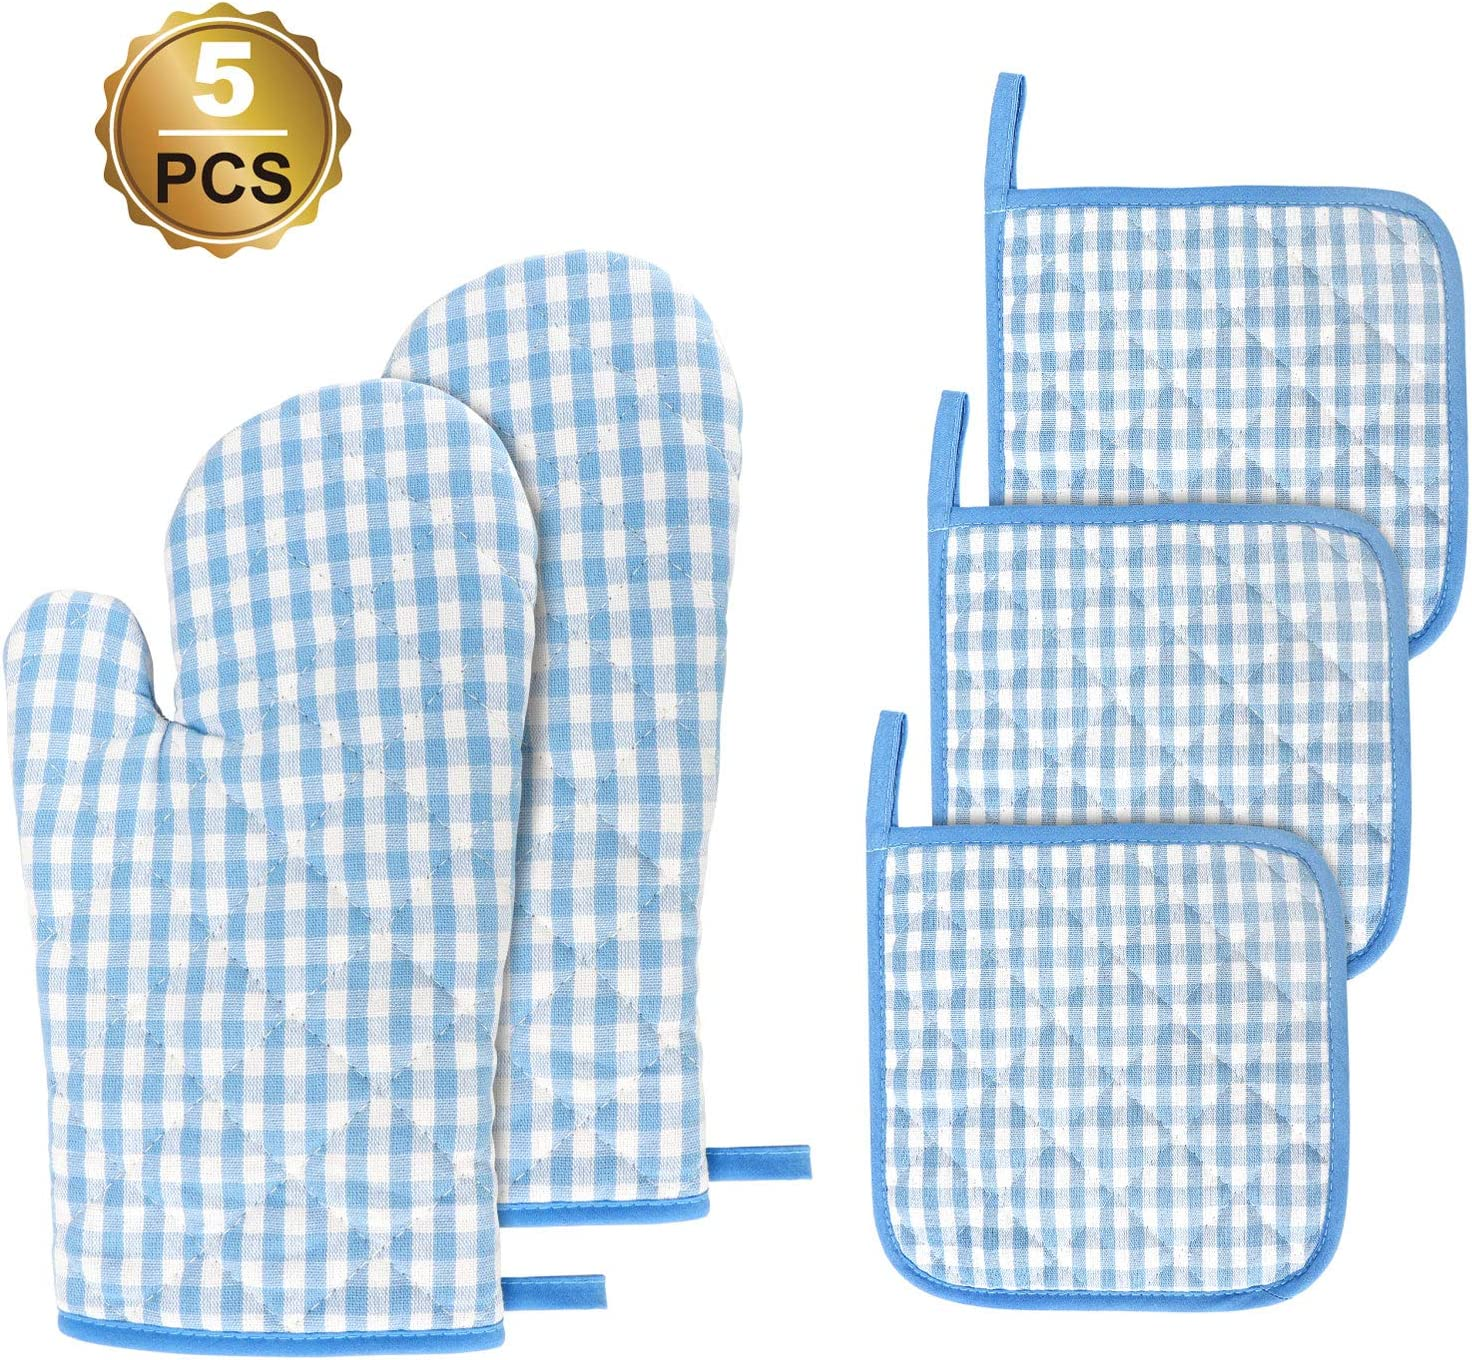 Jennice House Kitchen Oven Mitt and Pot Holders, 5 pcs Heat Resistant Vintage Cotton Gingham Oven Mitts and Potholders Hot Pads Mats Coasters Set for Cooking Baking (Blue Set)